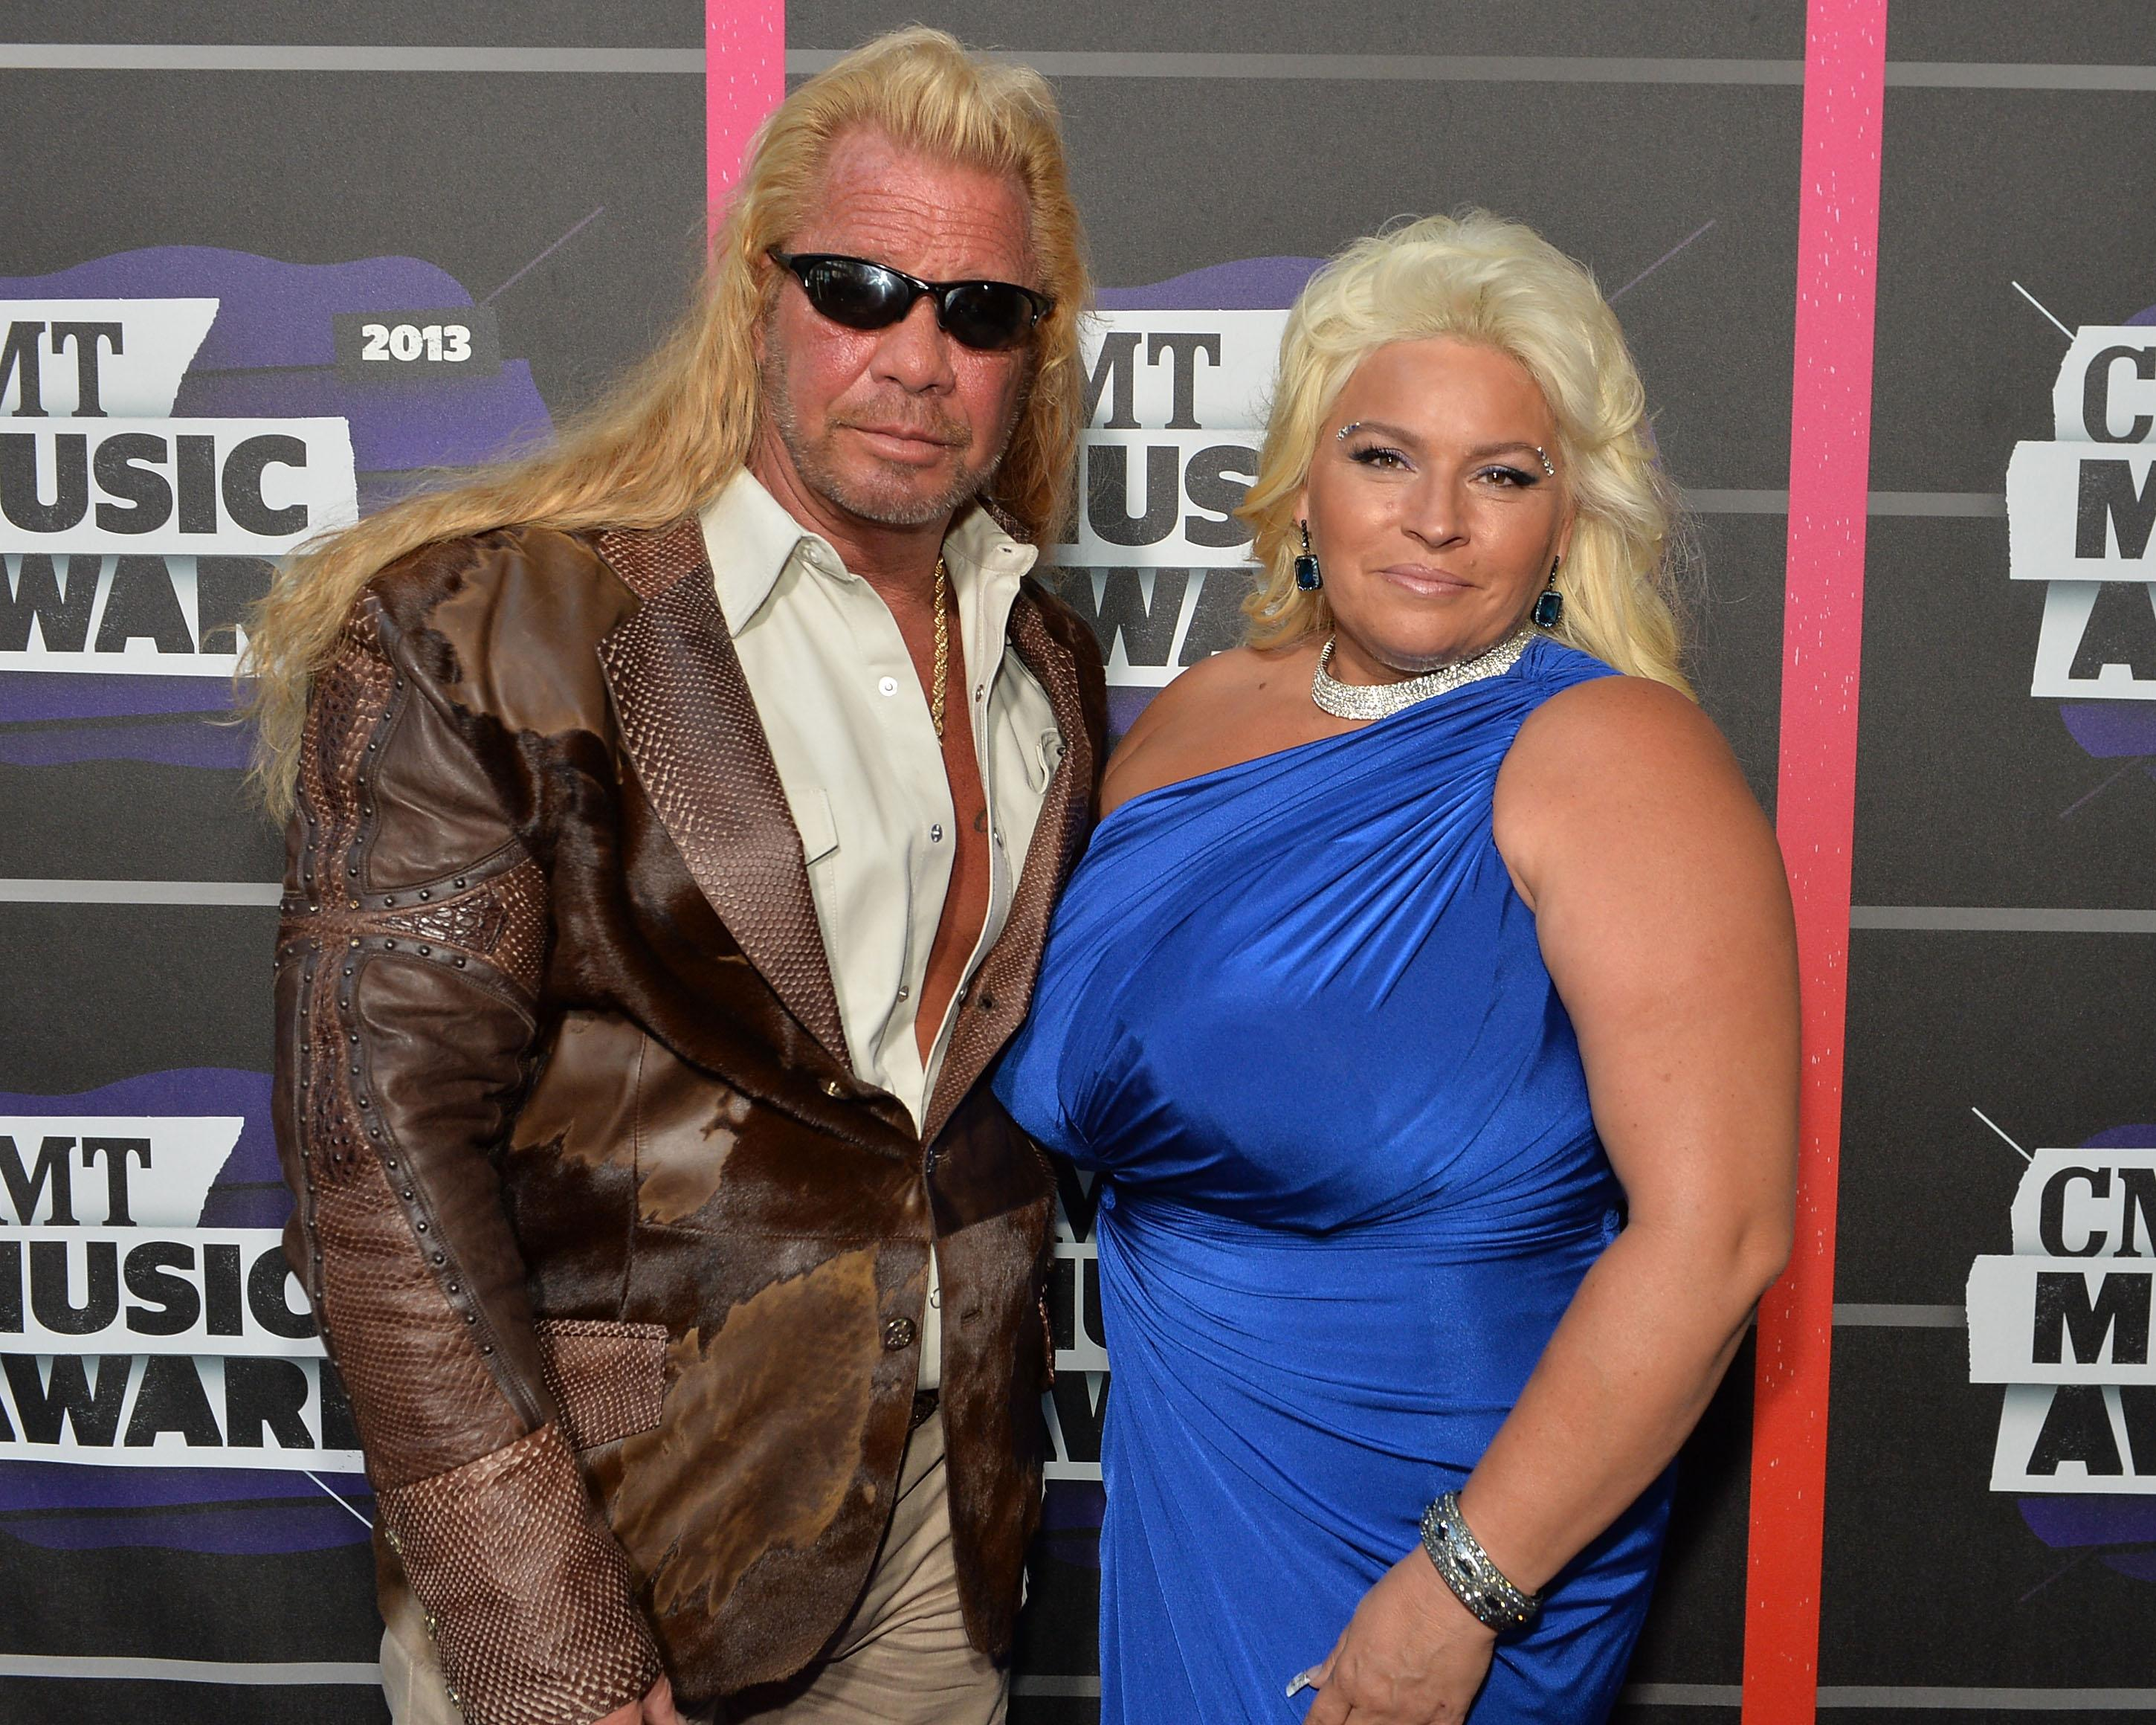 Dog the Bounty Hunter Shares Twitter Photo of Wife in Hospital Bed